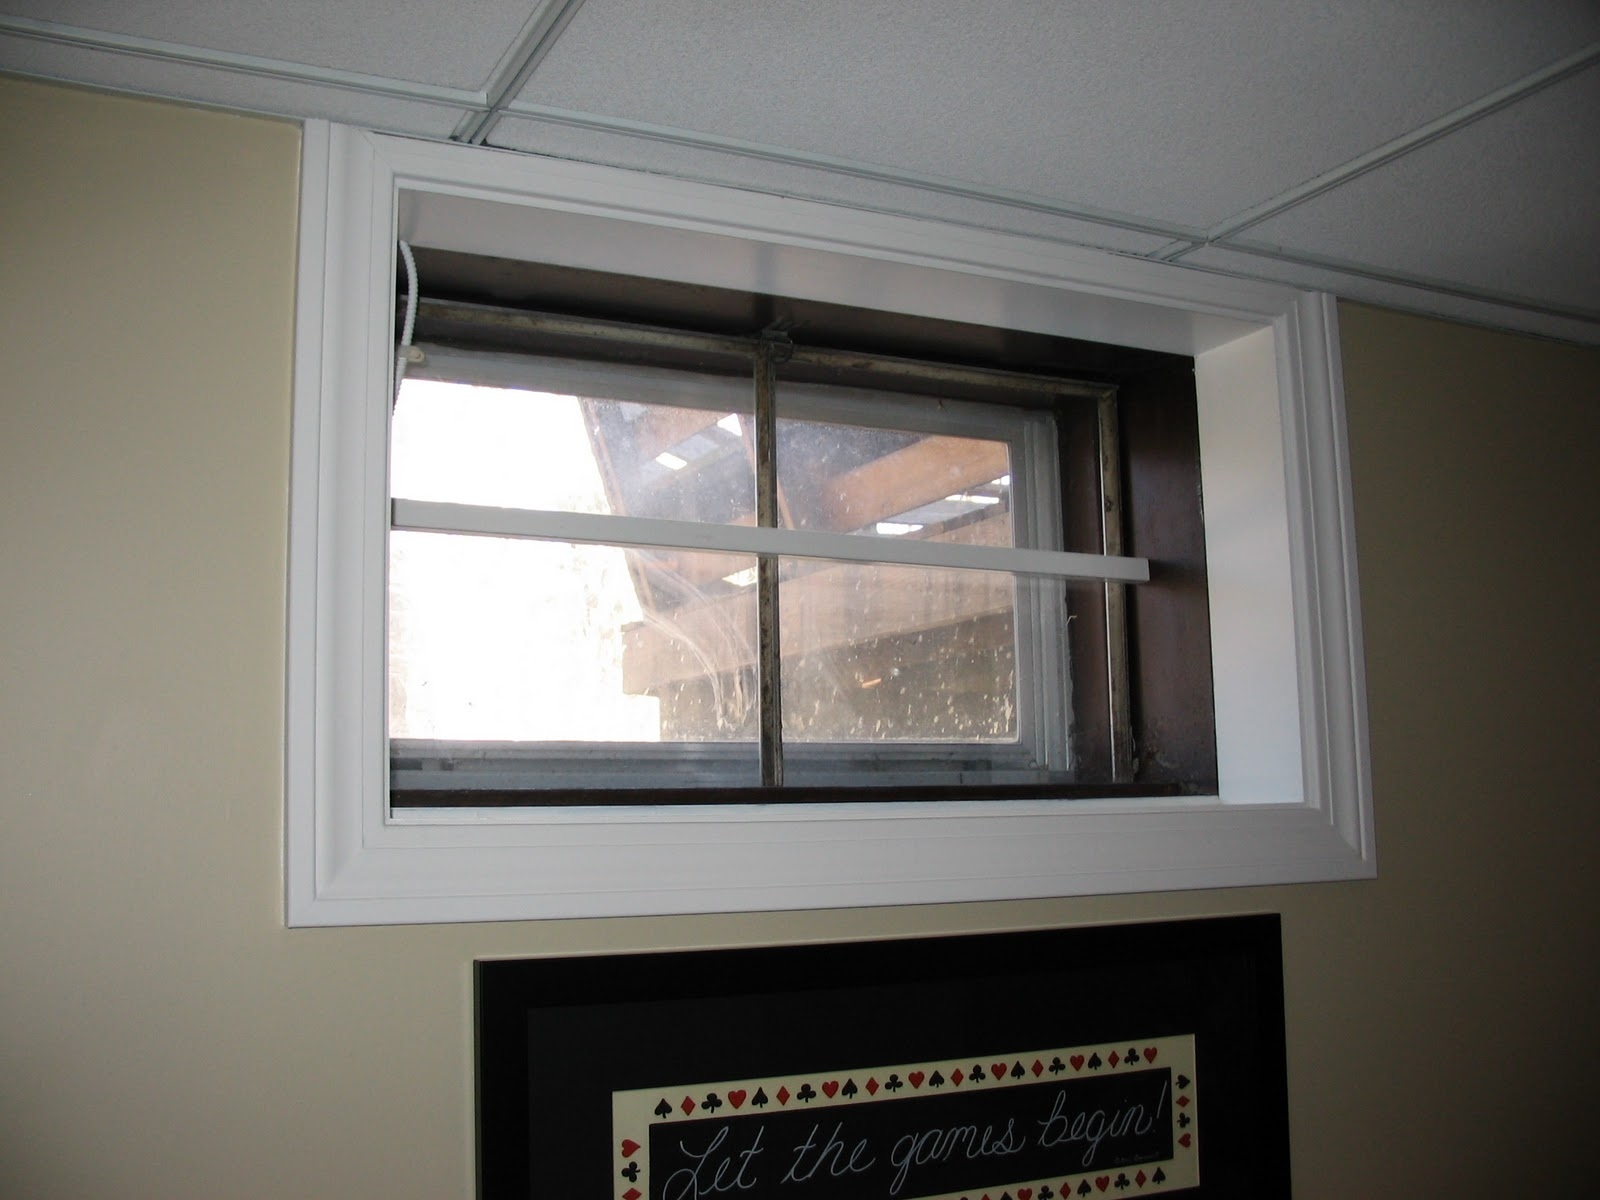 Covering Up Basement Windows Covering Up Basement Windows basement remodeling ideas basement window treatments 1600 X 1200